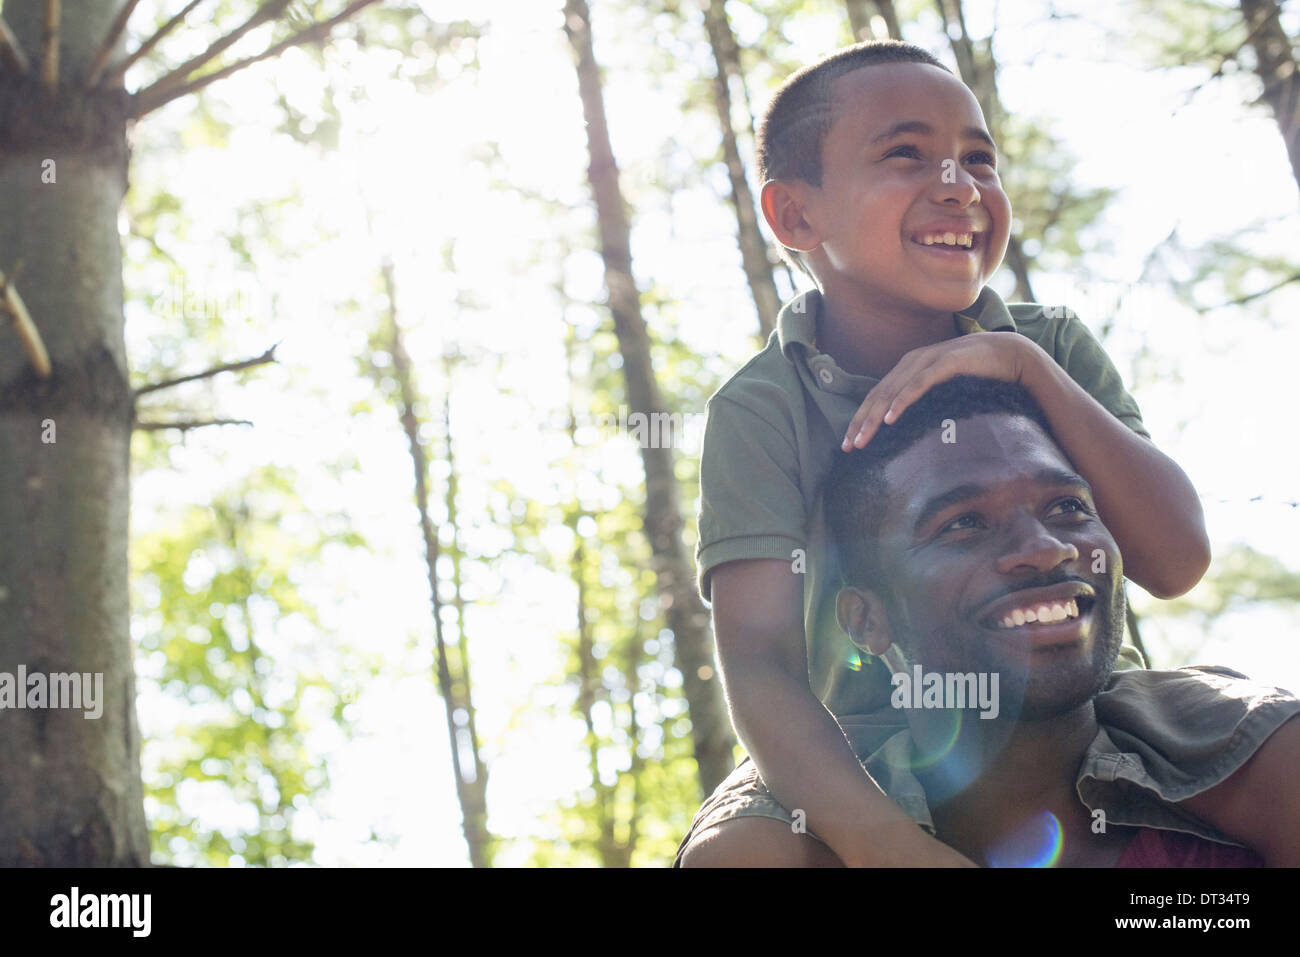 A boy sitting on his father's shoulders - Stock Image